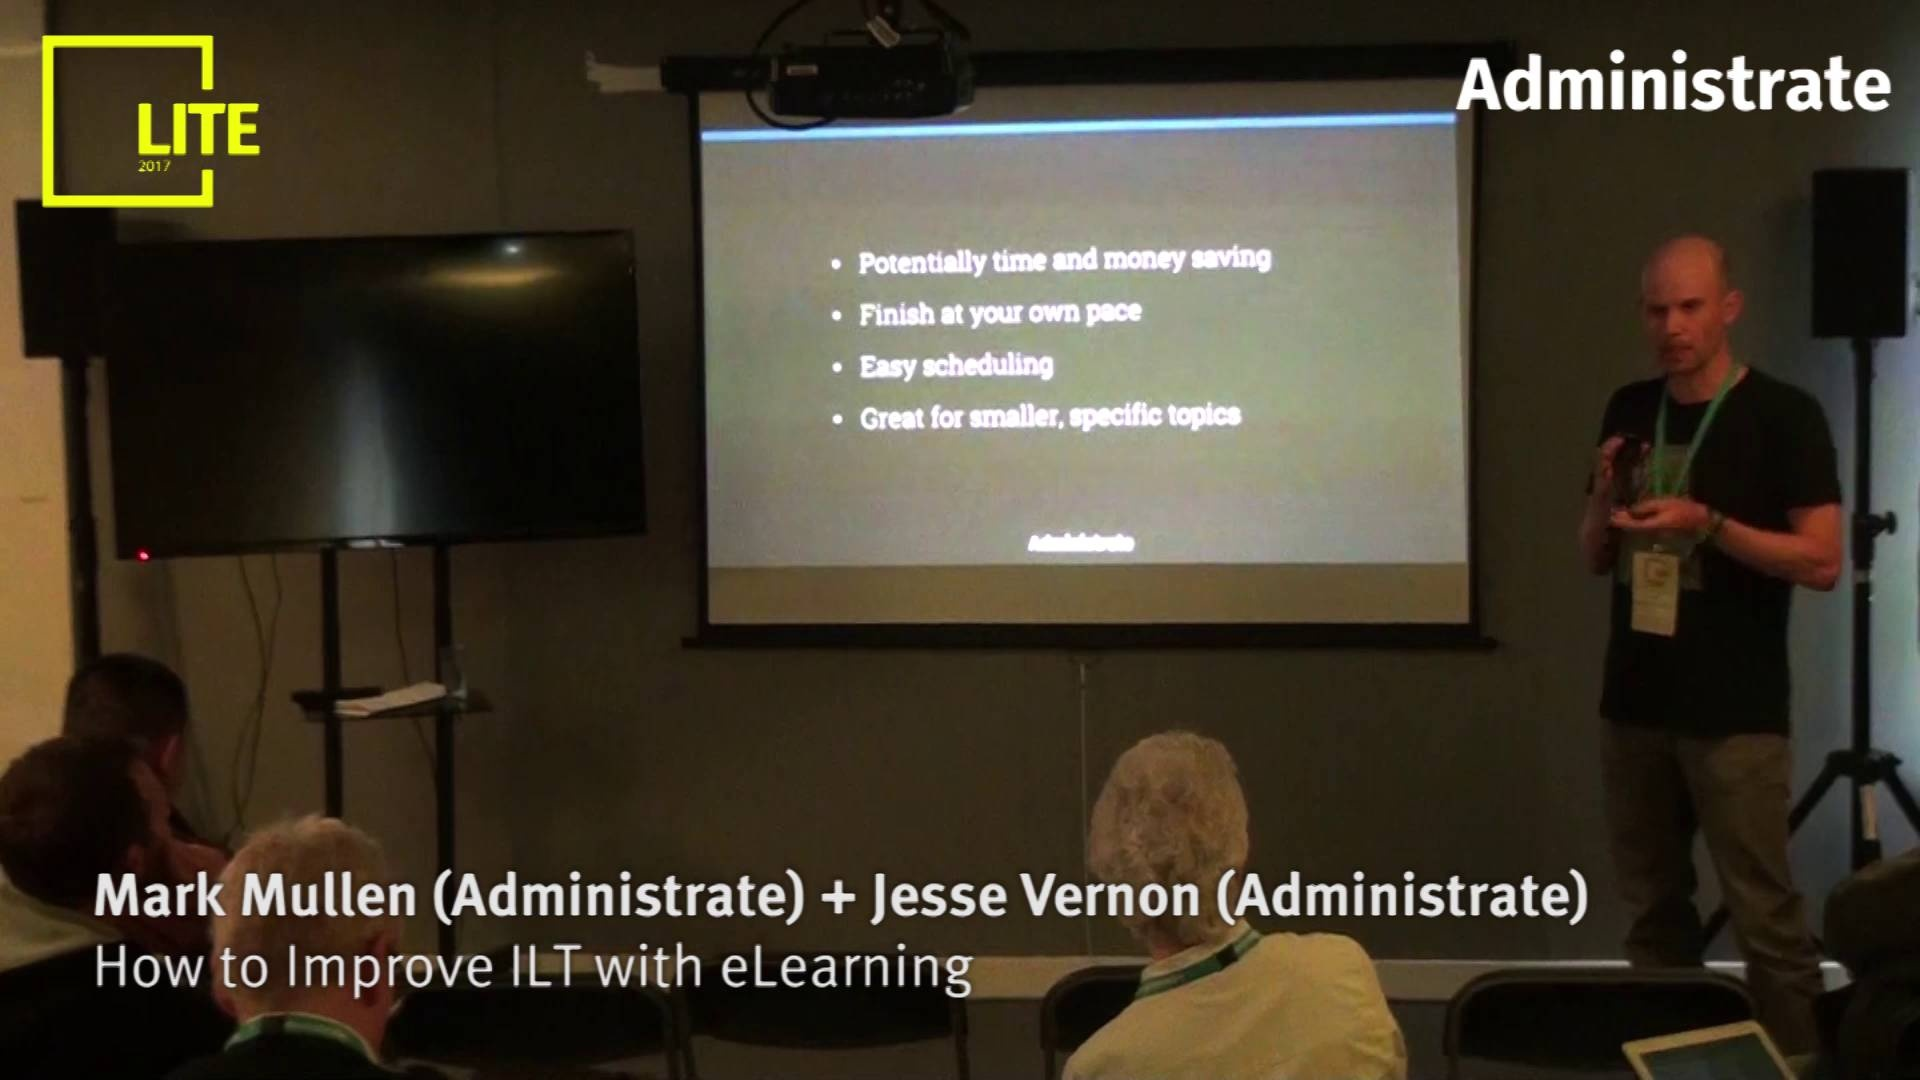 How to Improve ILT with eLearning [Mark Mullen & Jesse Vernon]